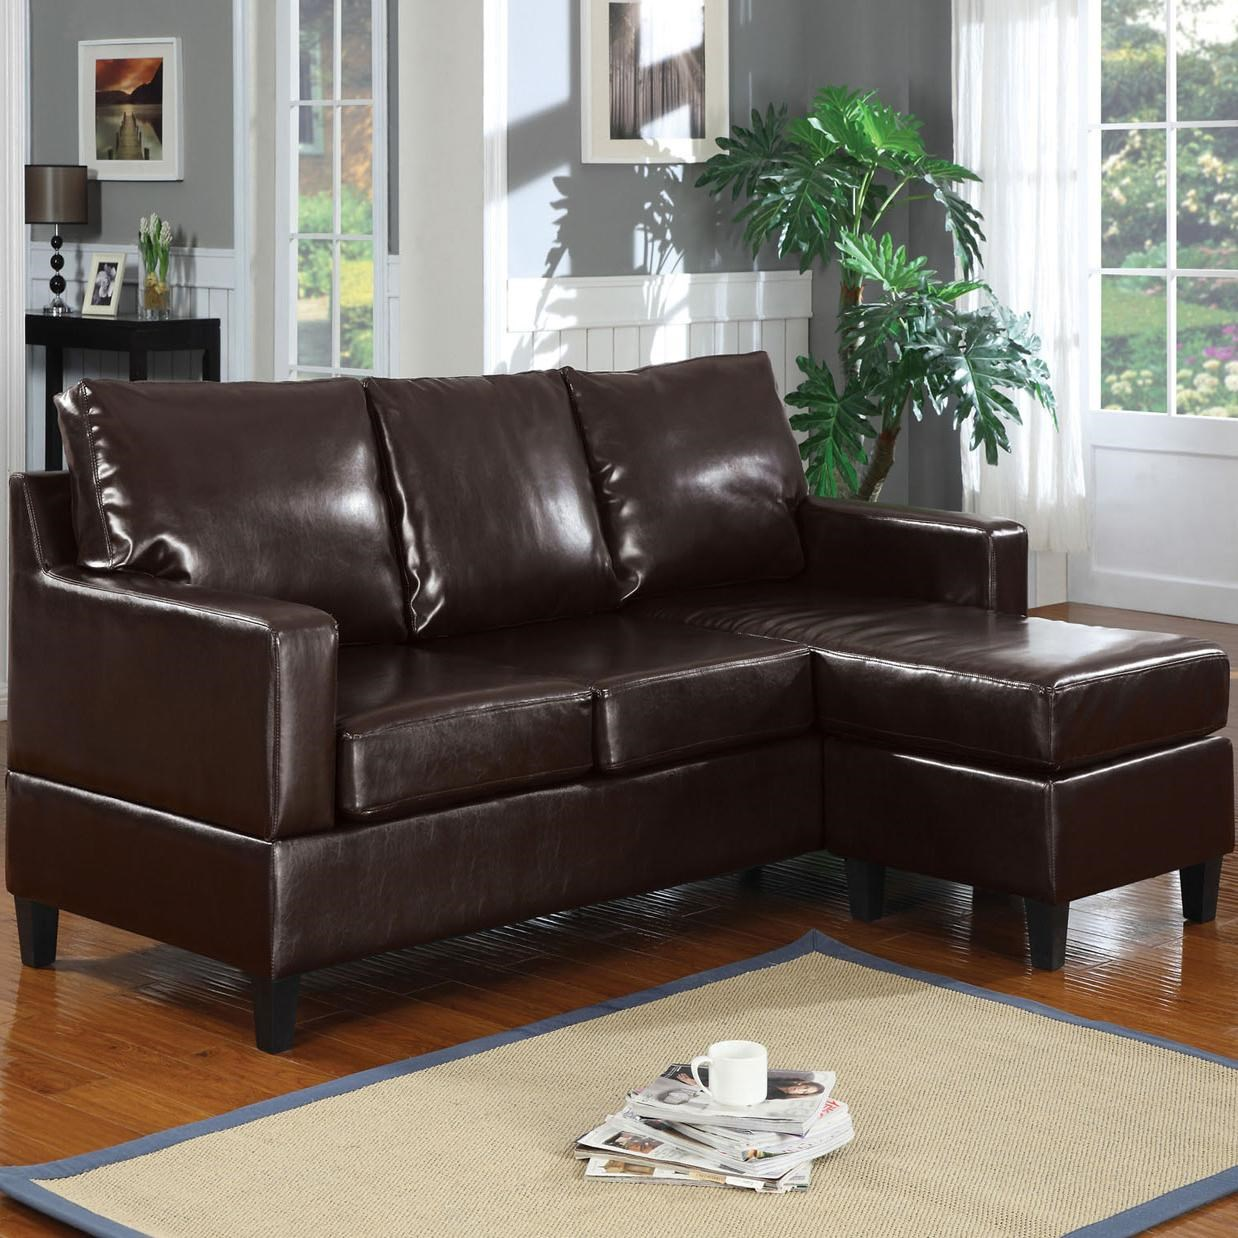 Acme Furniture VogueChaise Sectional